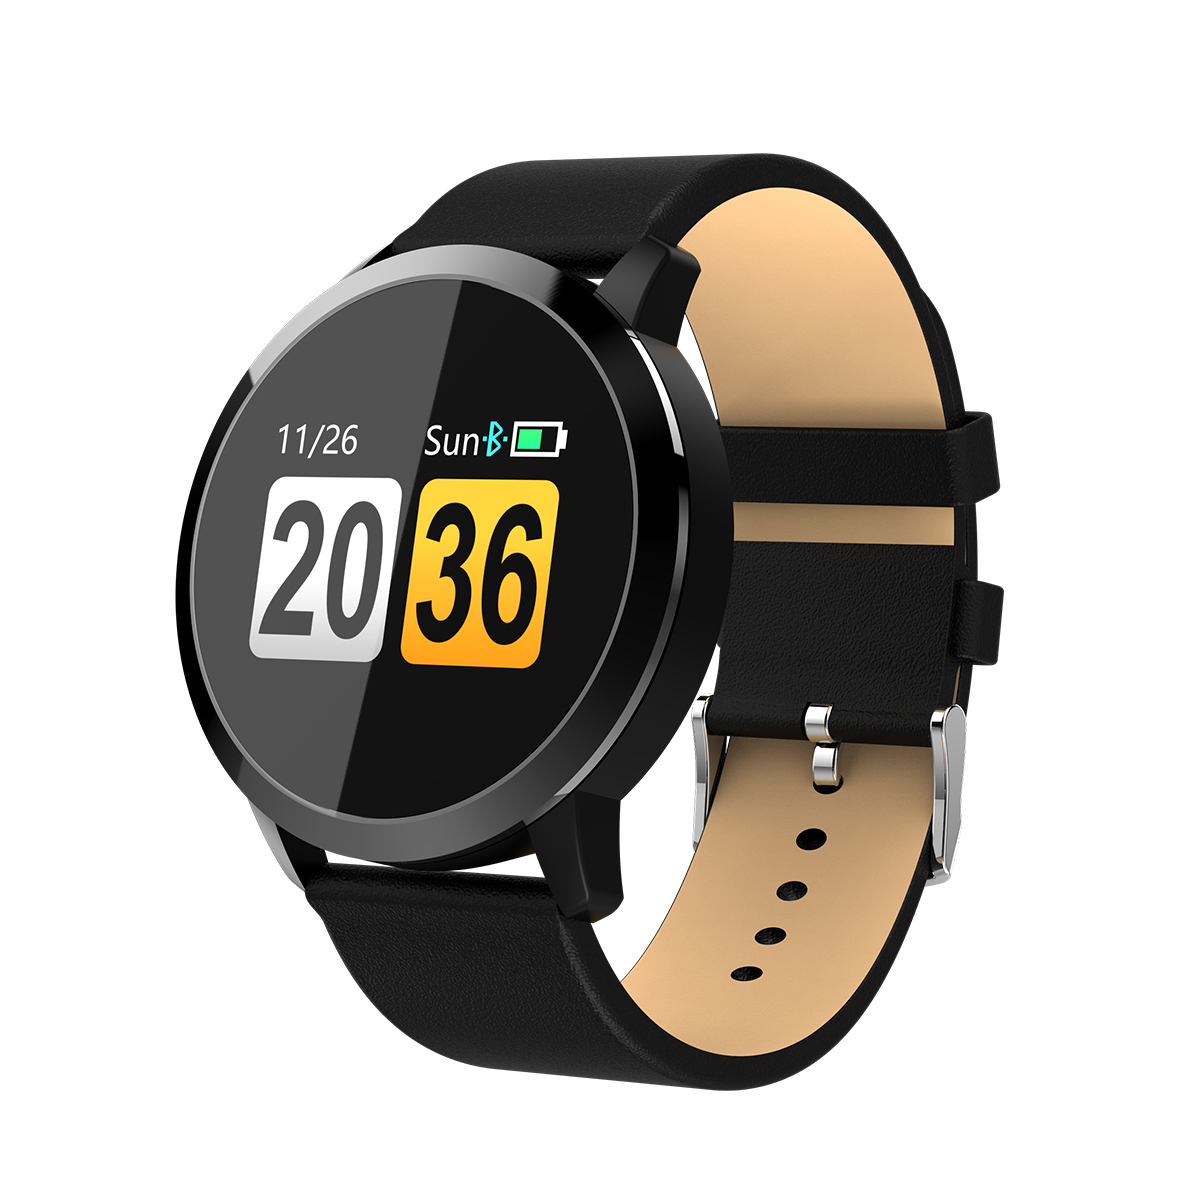 FIZILI Q8 Color Touch Screen Smartwatch Smart 1080P Watch Men and Women IP67 Waterproof Sports Fitness Wearable Electronic Produ